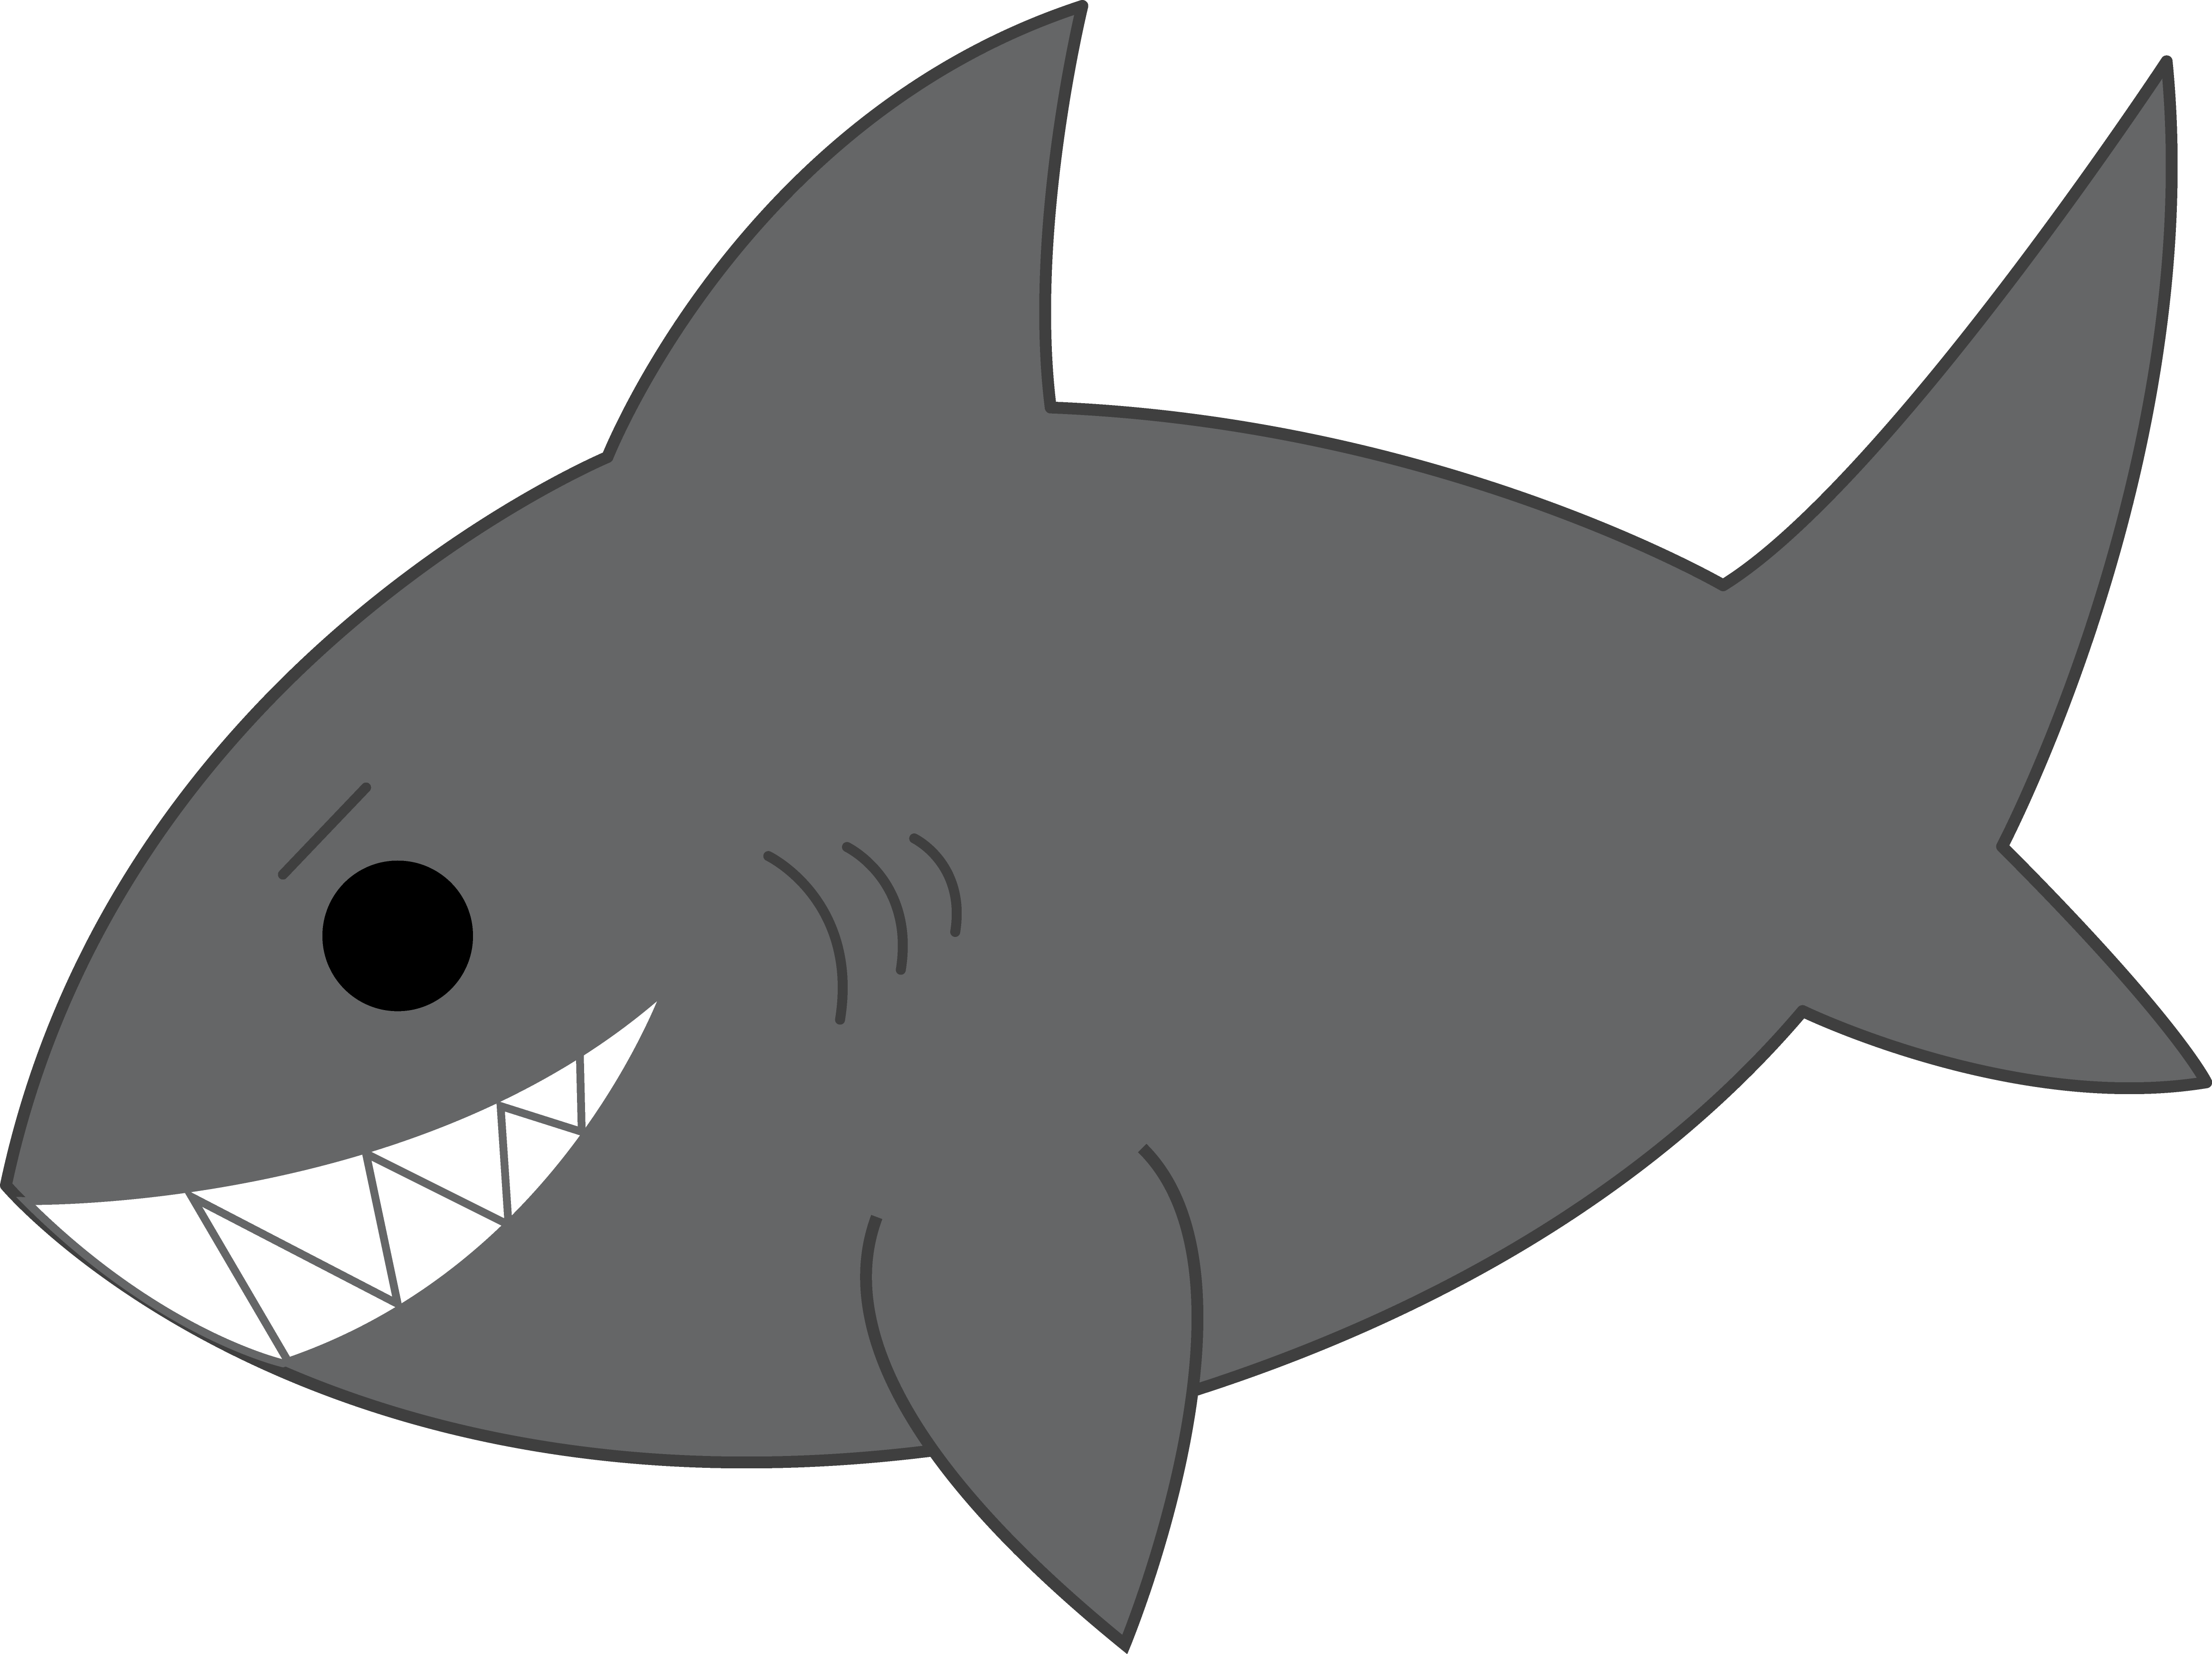 Shark cartoon clipart banner black and white download Free Shark Silhouette Clip Art, Download Free Clip Art, Free ... banner black and white download